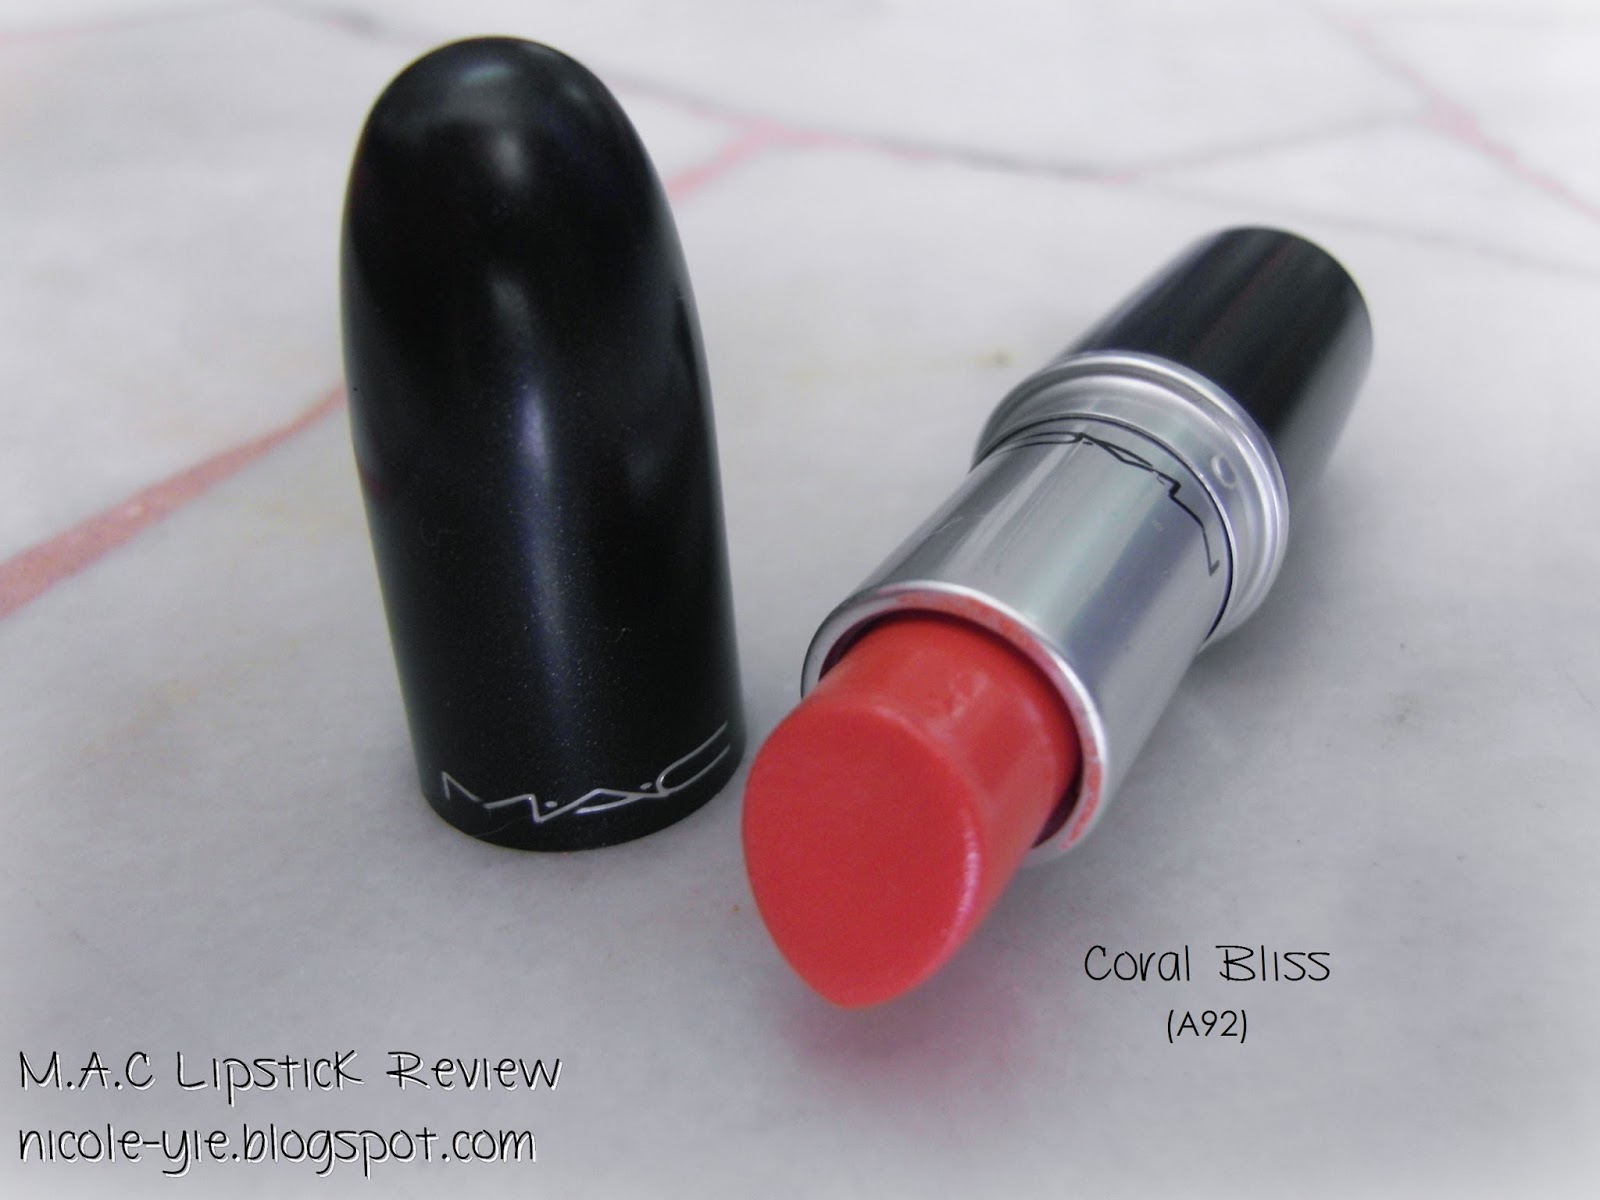 Beauty] M.A.C Cremesheen + Pearl Lipstick (Coral Bliss A92) Review ...